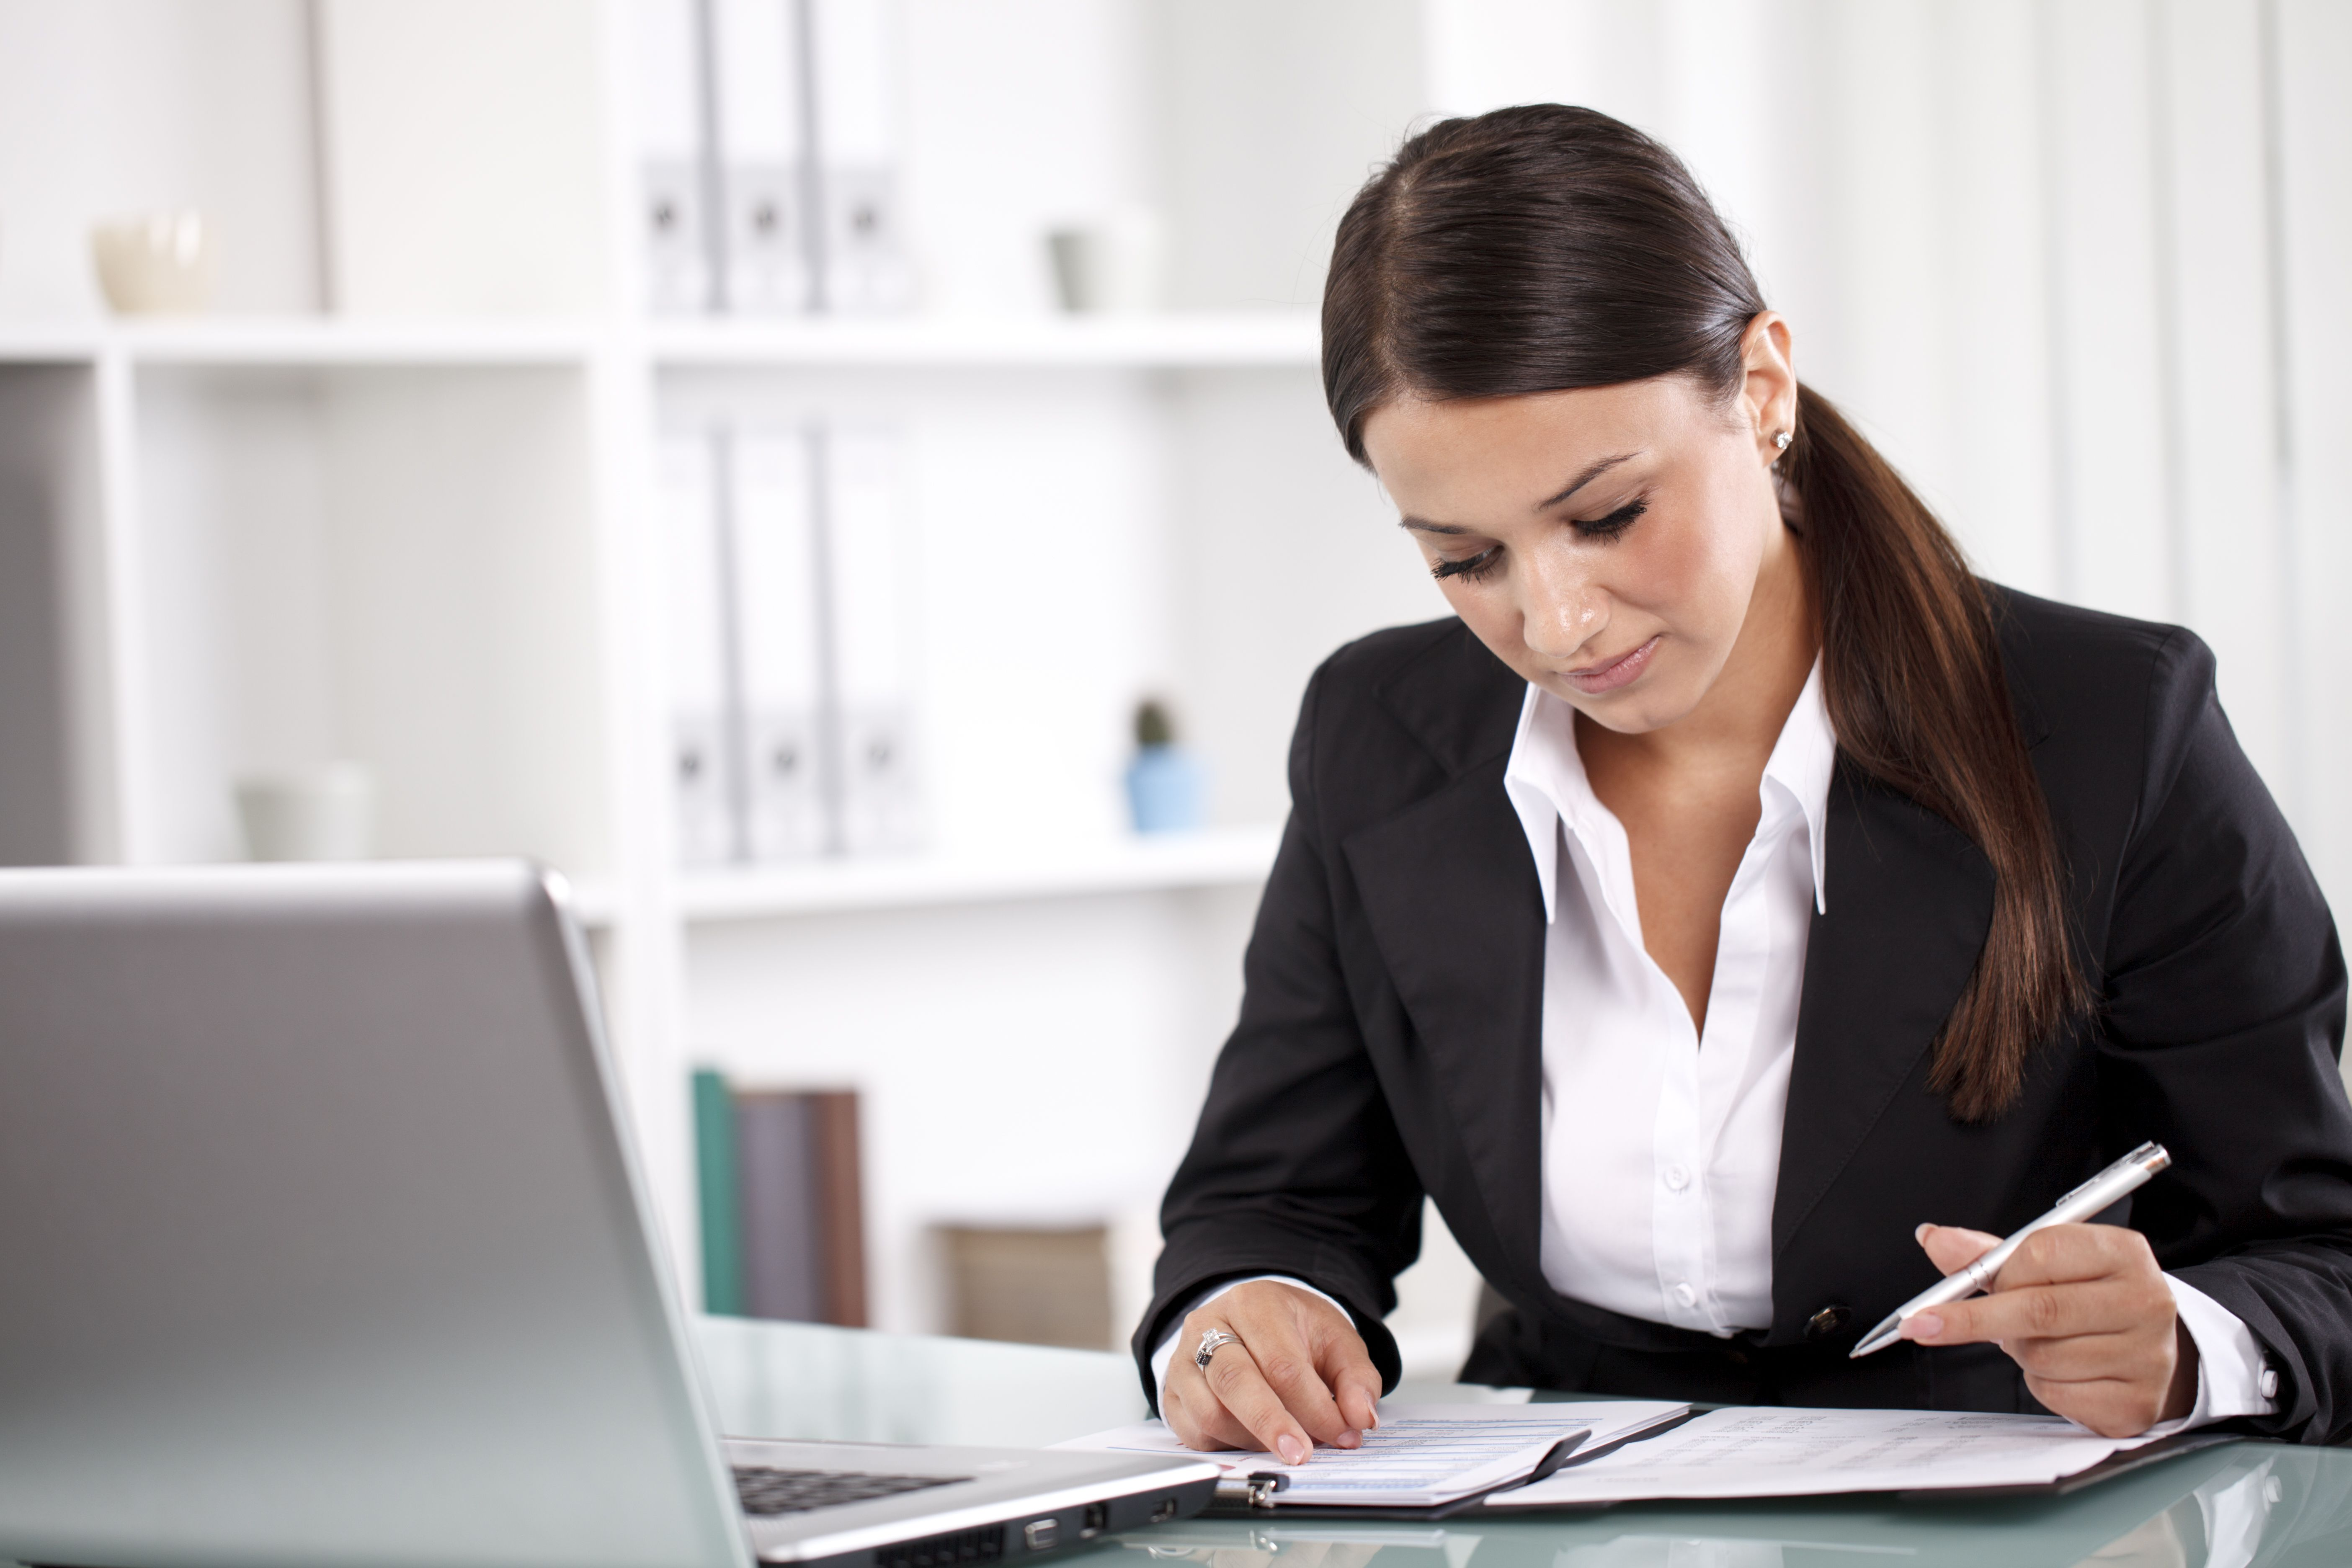 young woman working on interview questions